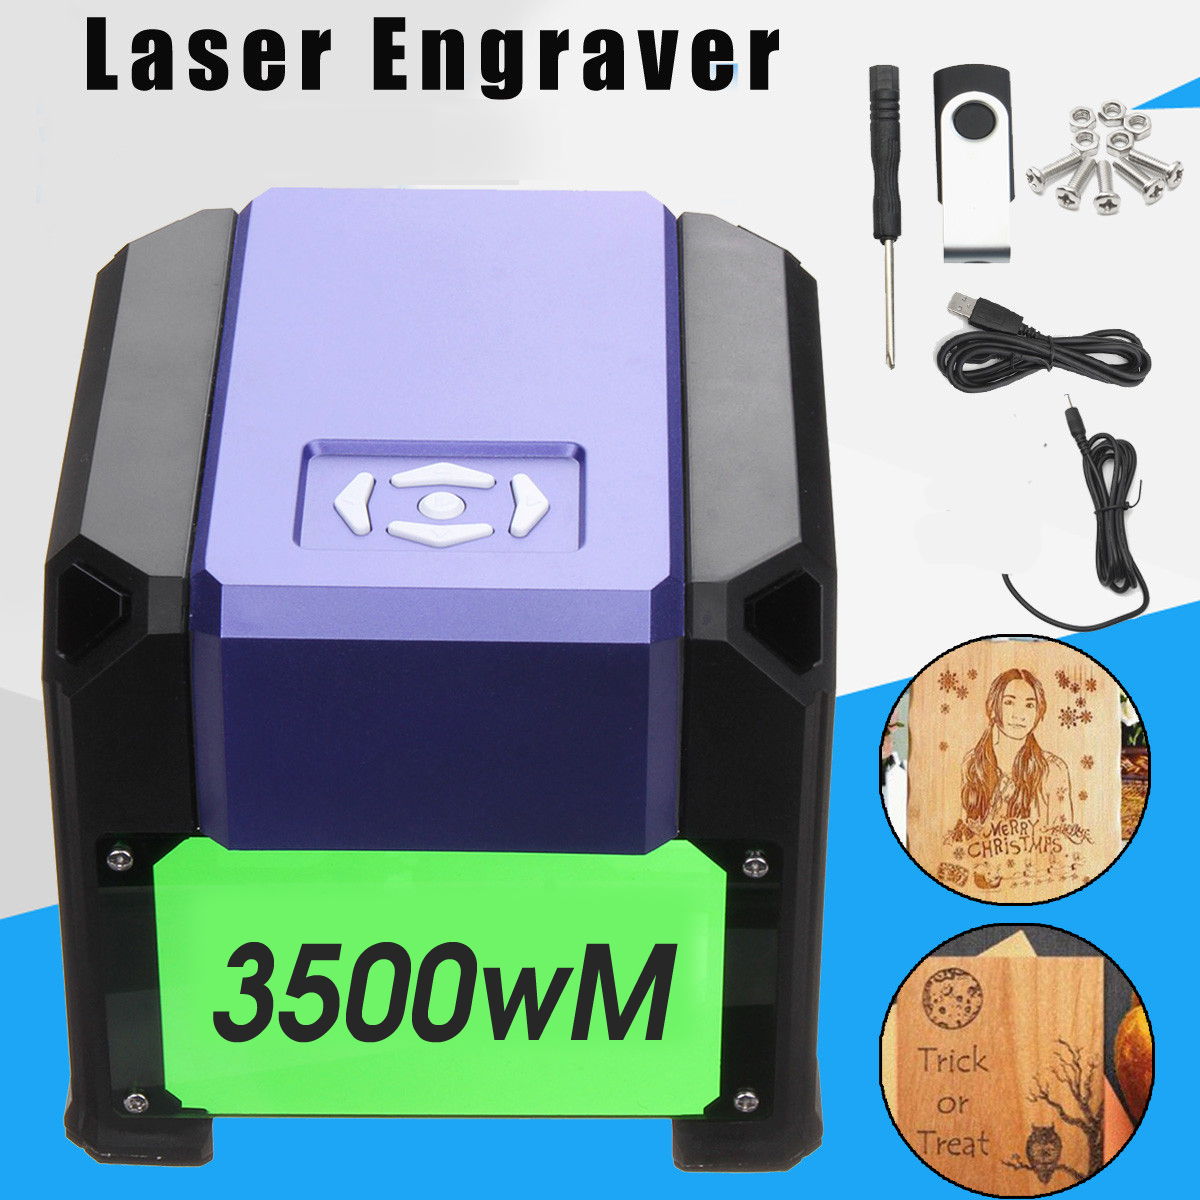 3500mW 80x80mm USB Desktop Mini Laser Engraver Machine Printer DIY Logo Marking Cutter Engraving Range CNC Laser Carving For WIN